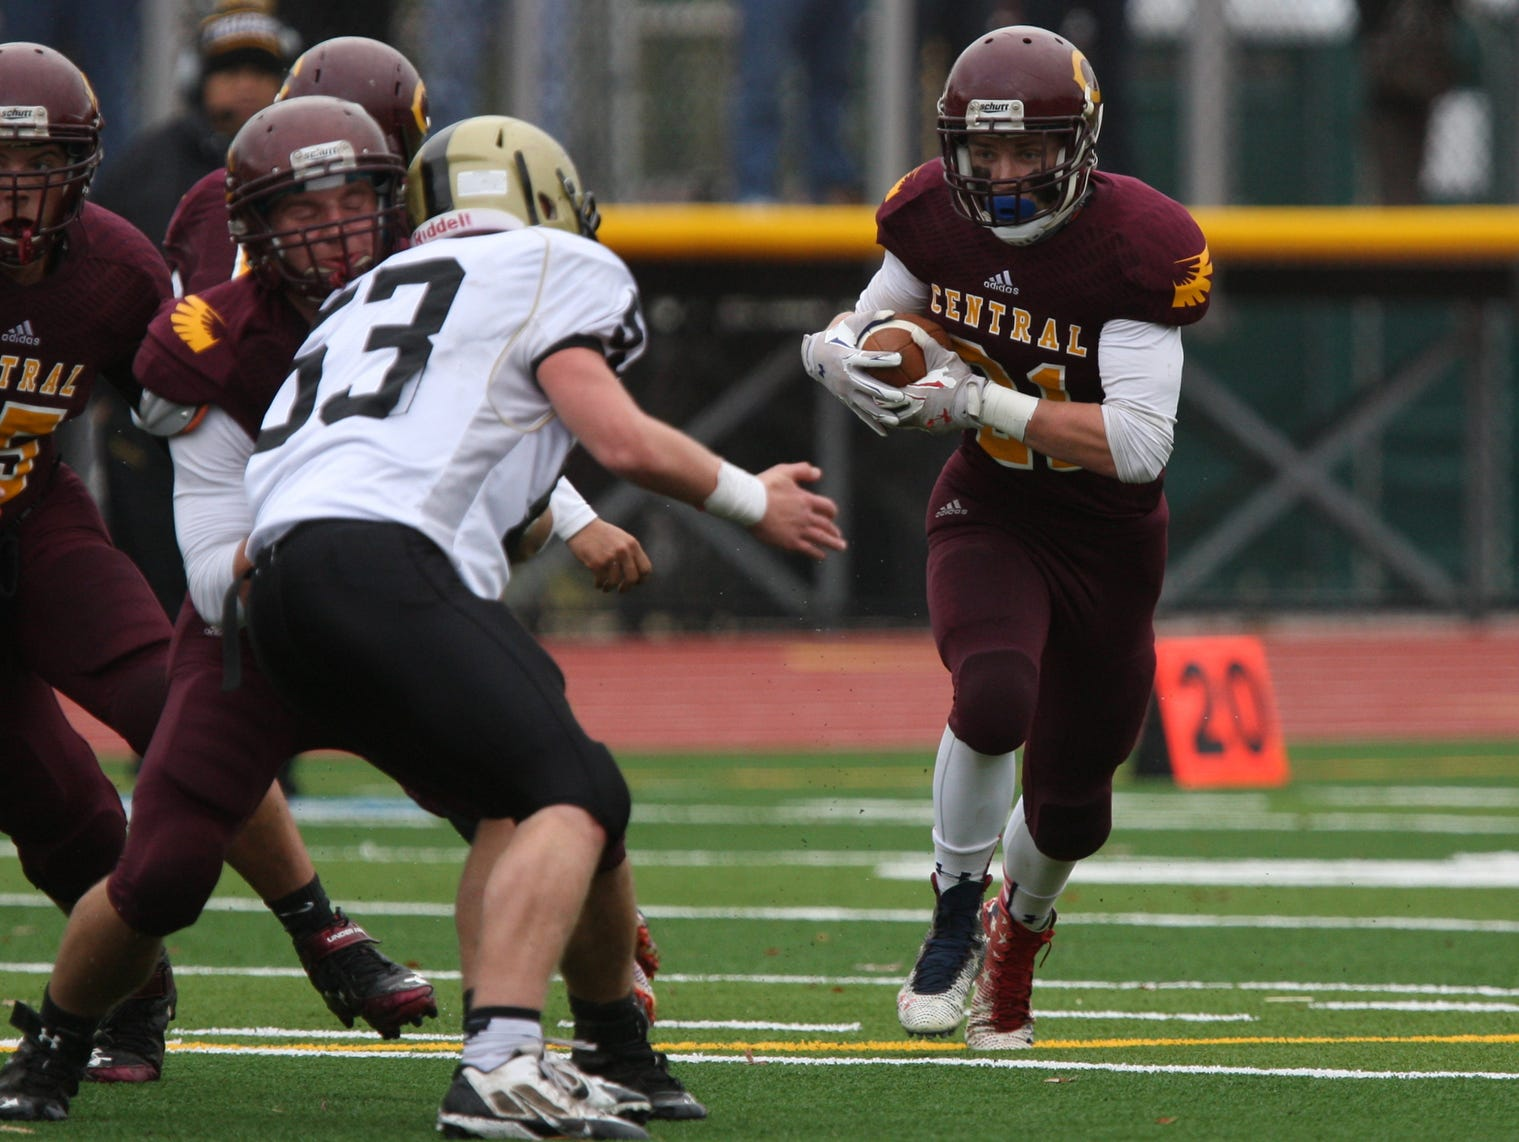 Central running back Mike Bickford, shown running against Southern last Thanksgiving Day, will lead the Golden Eagles against Southern Friday night at Southern in the season-opener for both teams